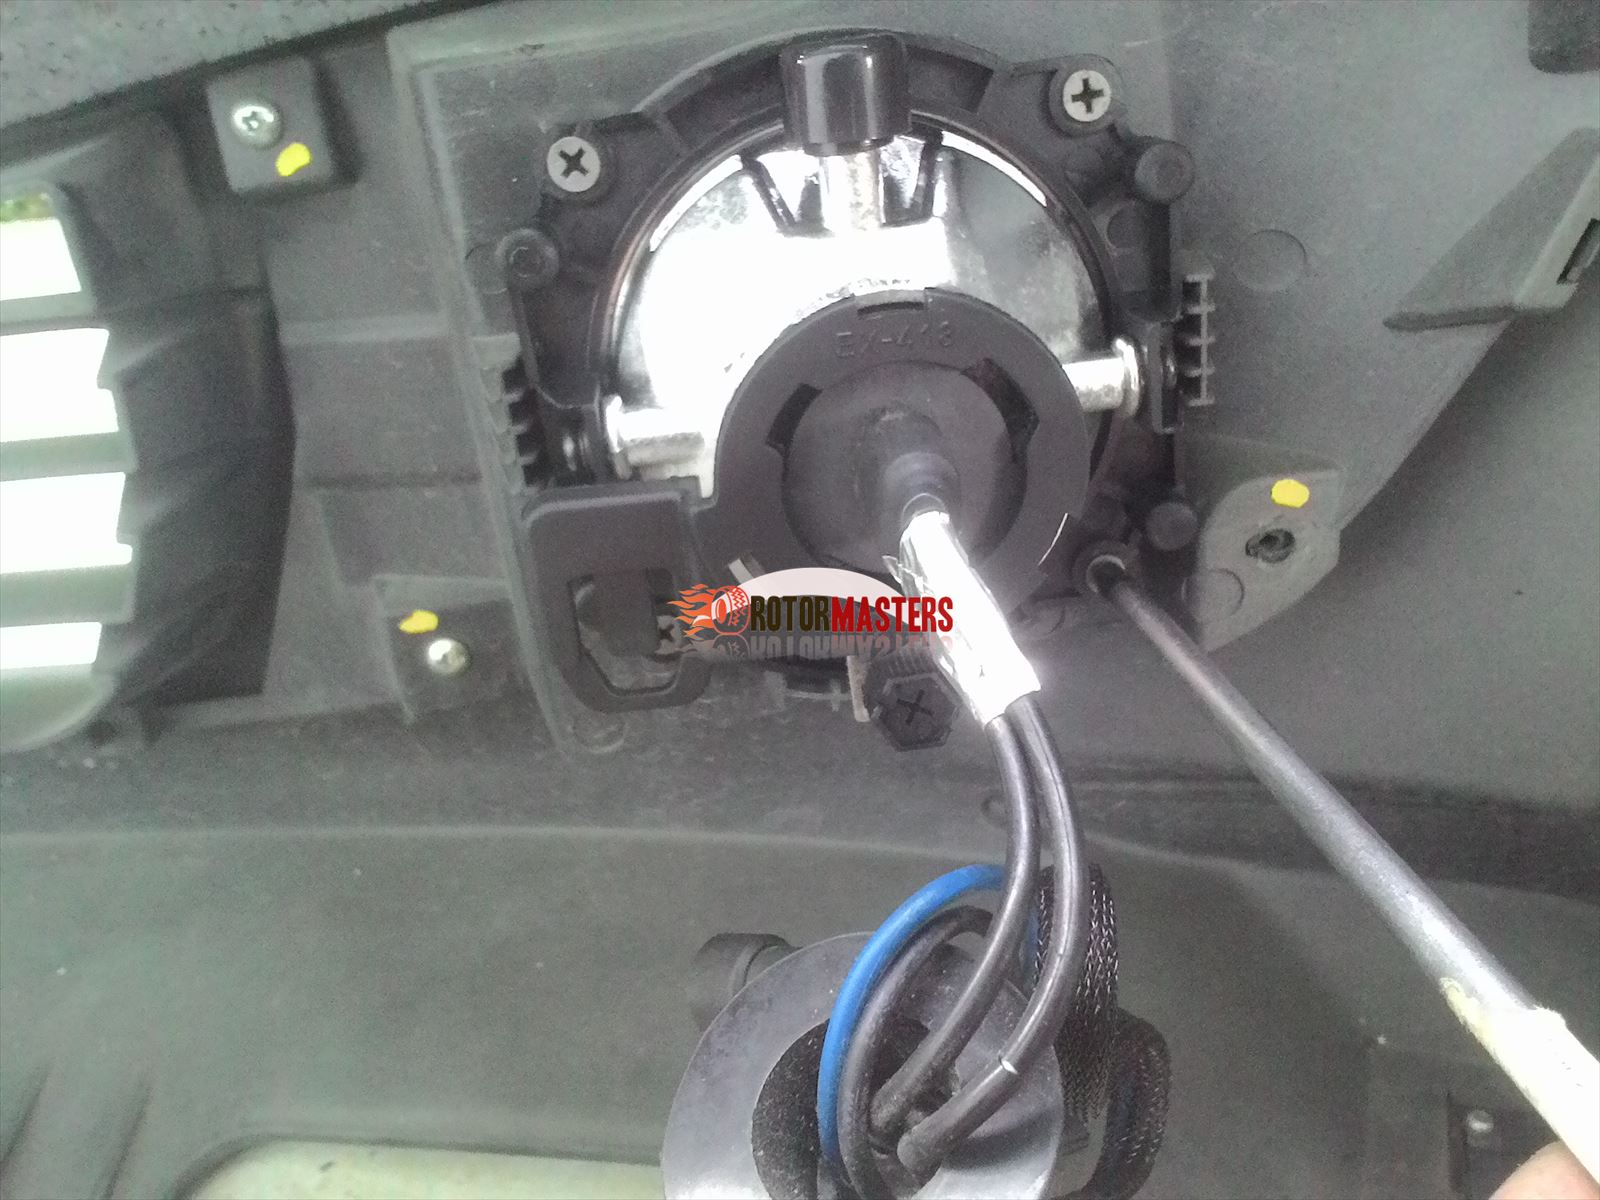 Proton Saga Power Window Wiring Diagram Wire Data Schema Wira Cara Fog Lamp Flx Portal Switch For 2001 Chevy Cavalier